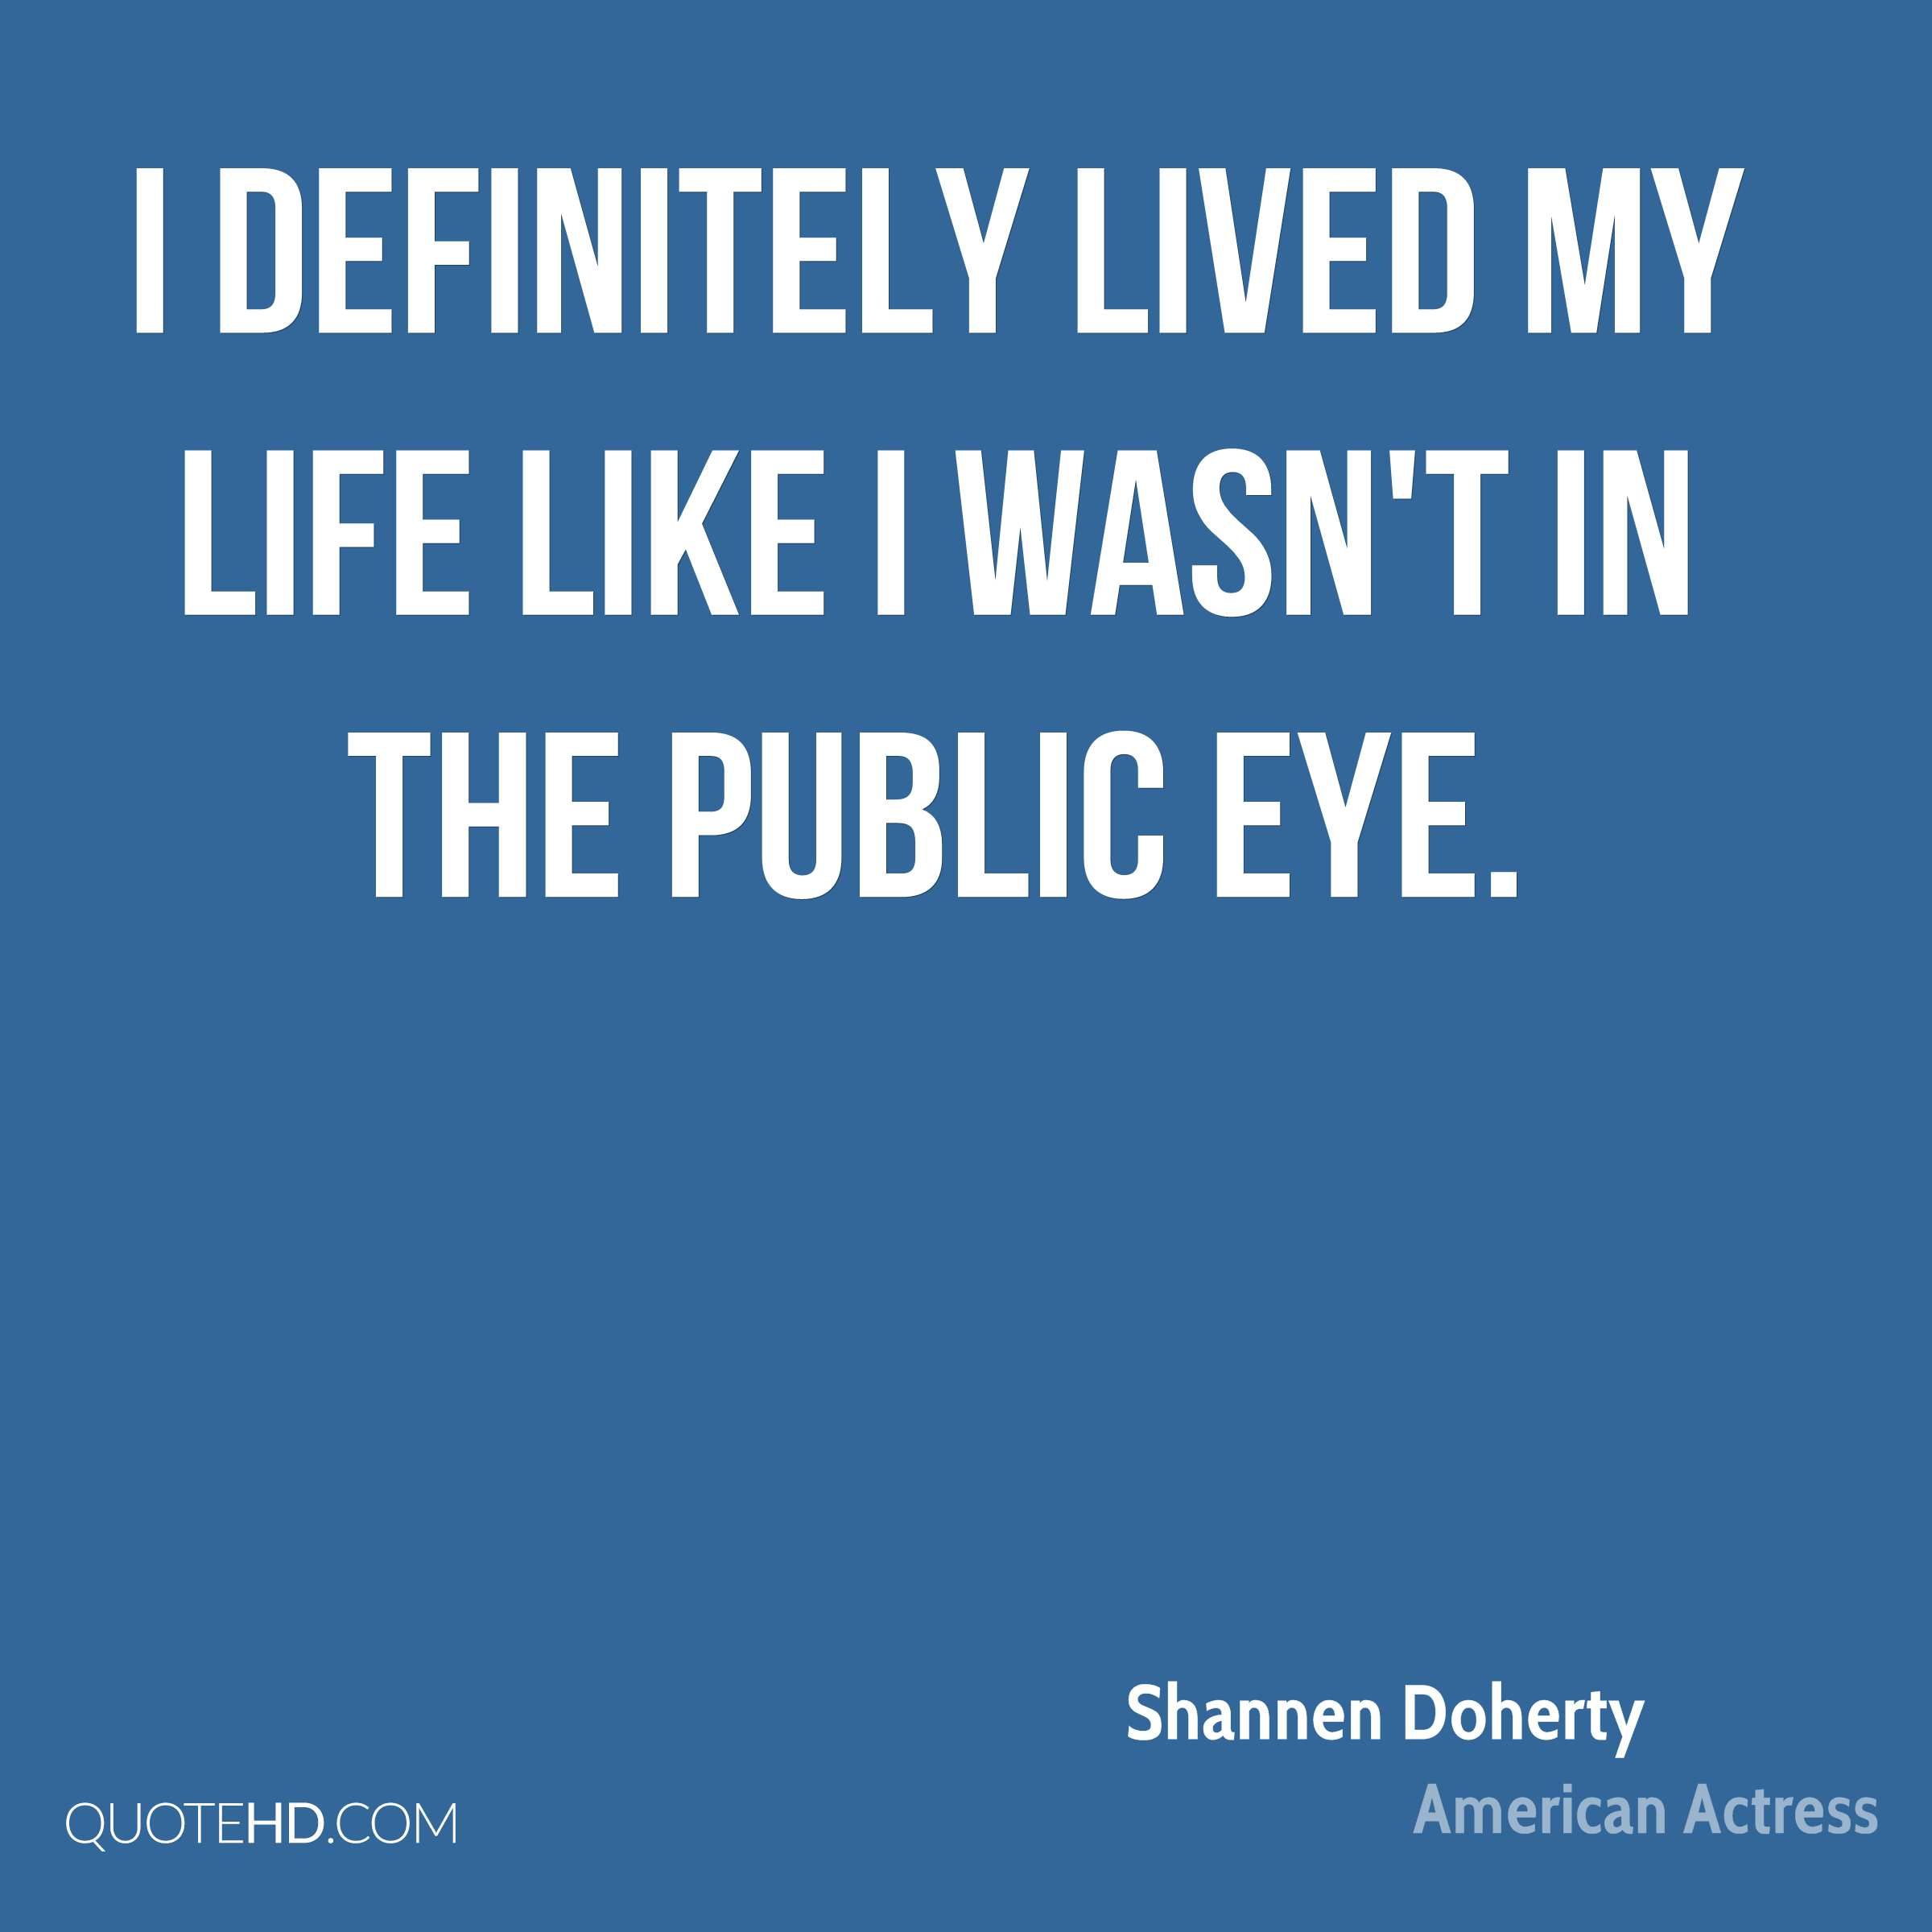 I definitely lived my life like I wasn't in the public eye.